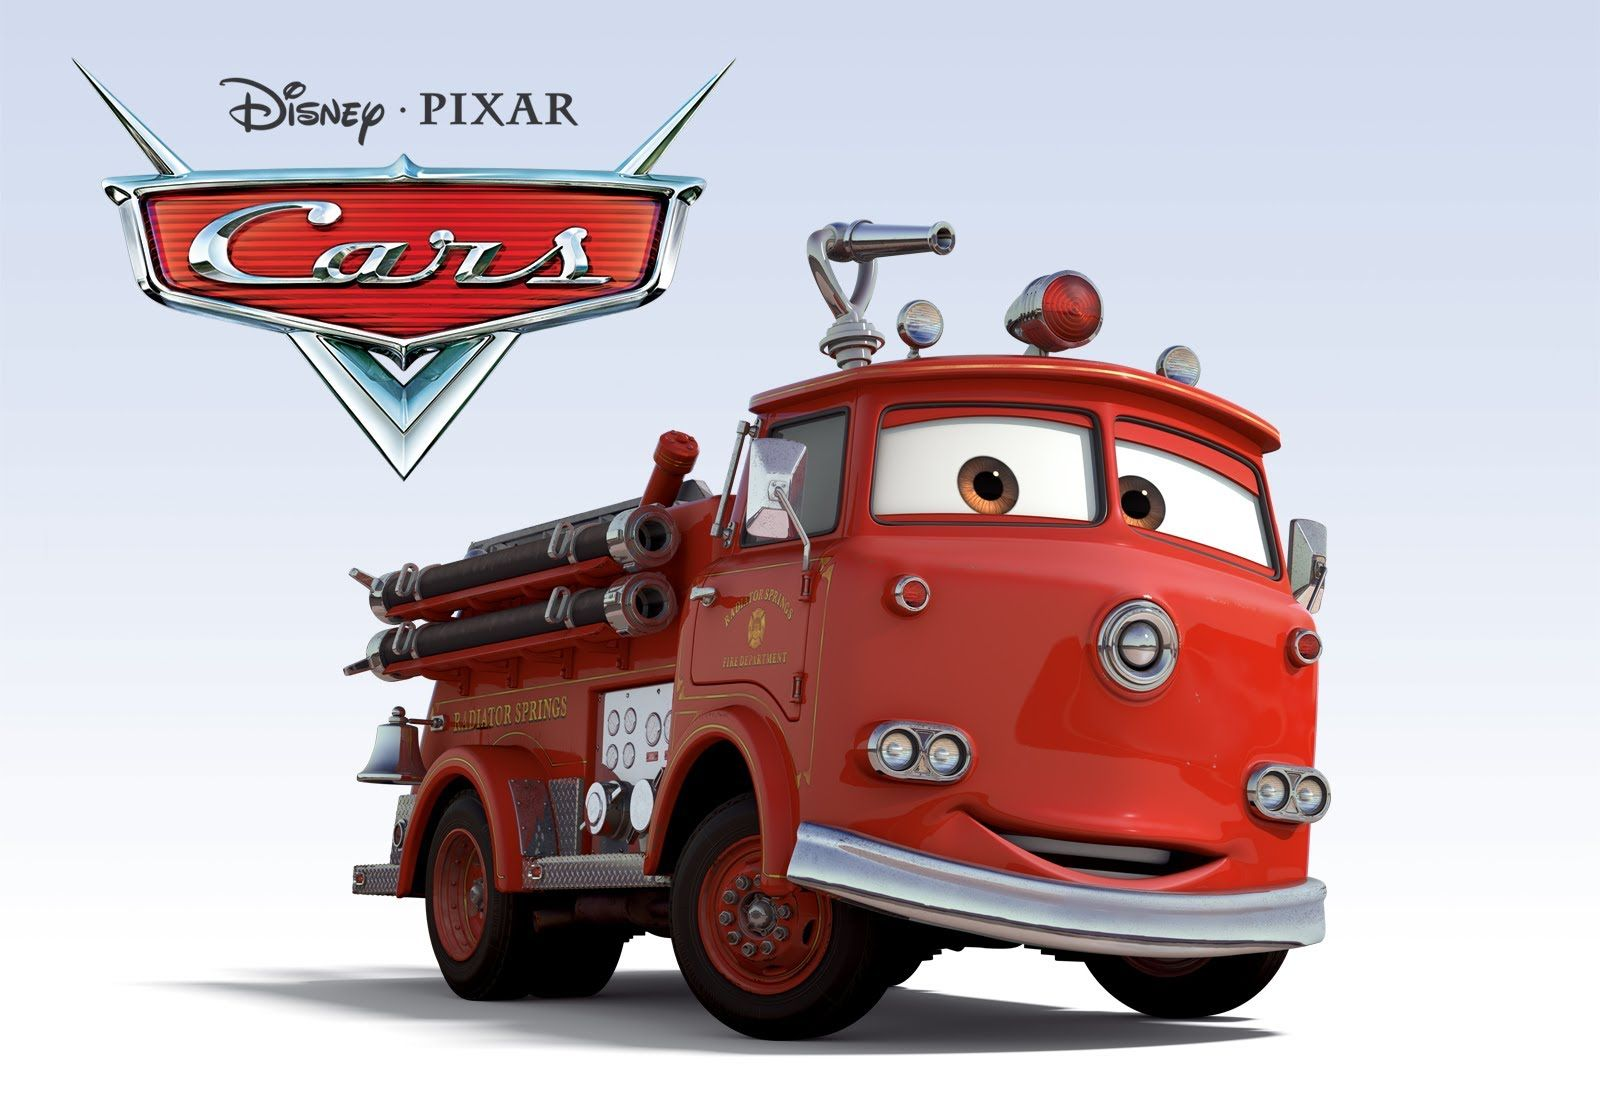 This Is Wallpaper Of Red The Fire Truck From The Disney Pixar Cg